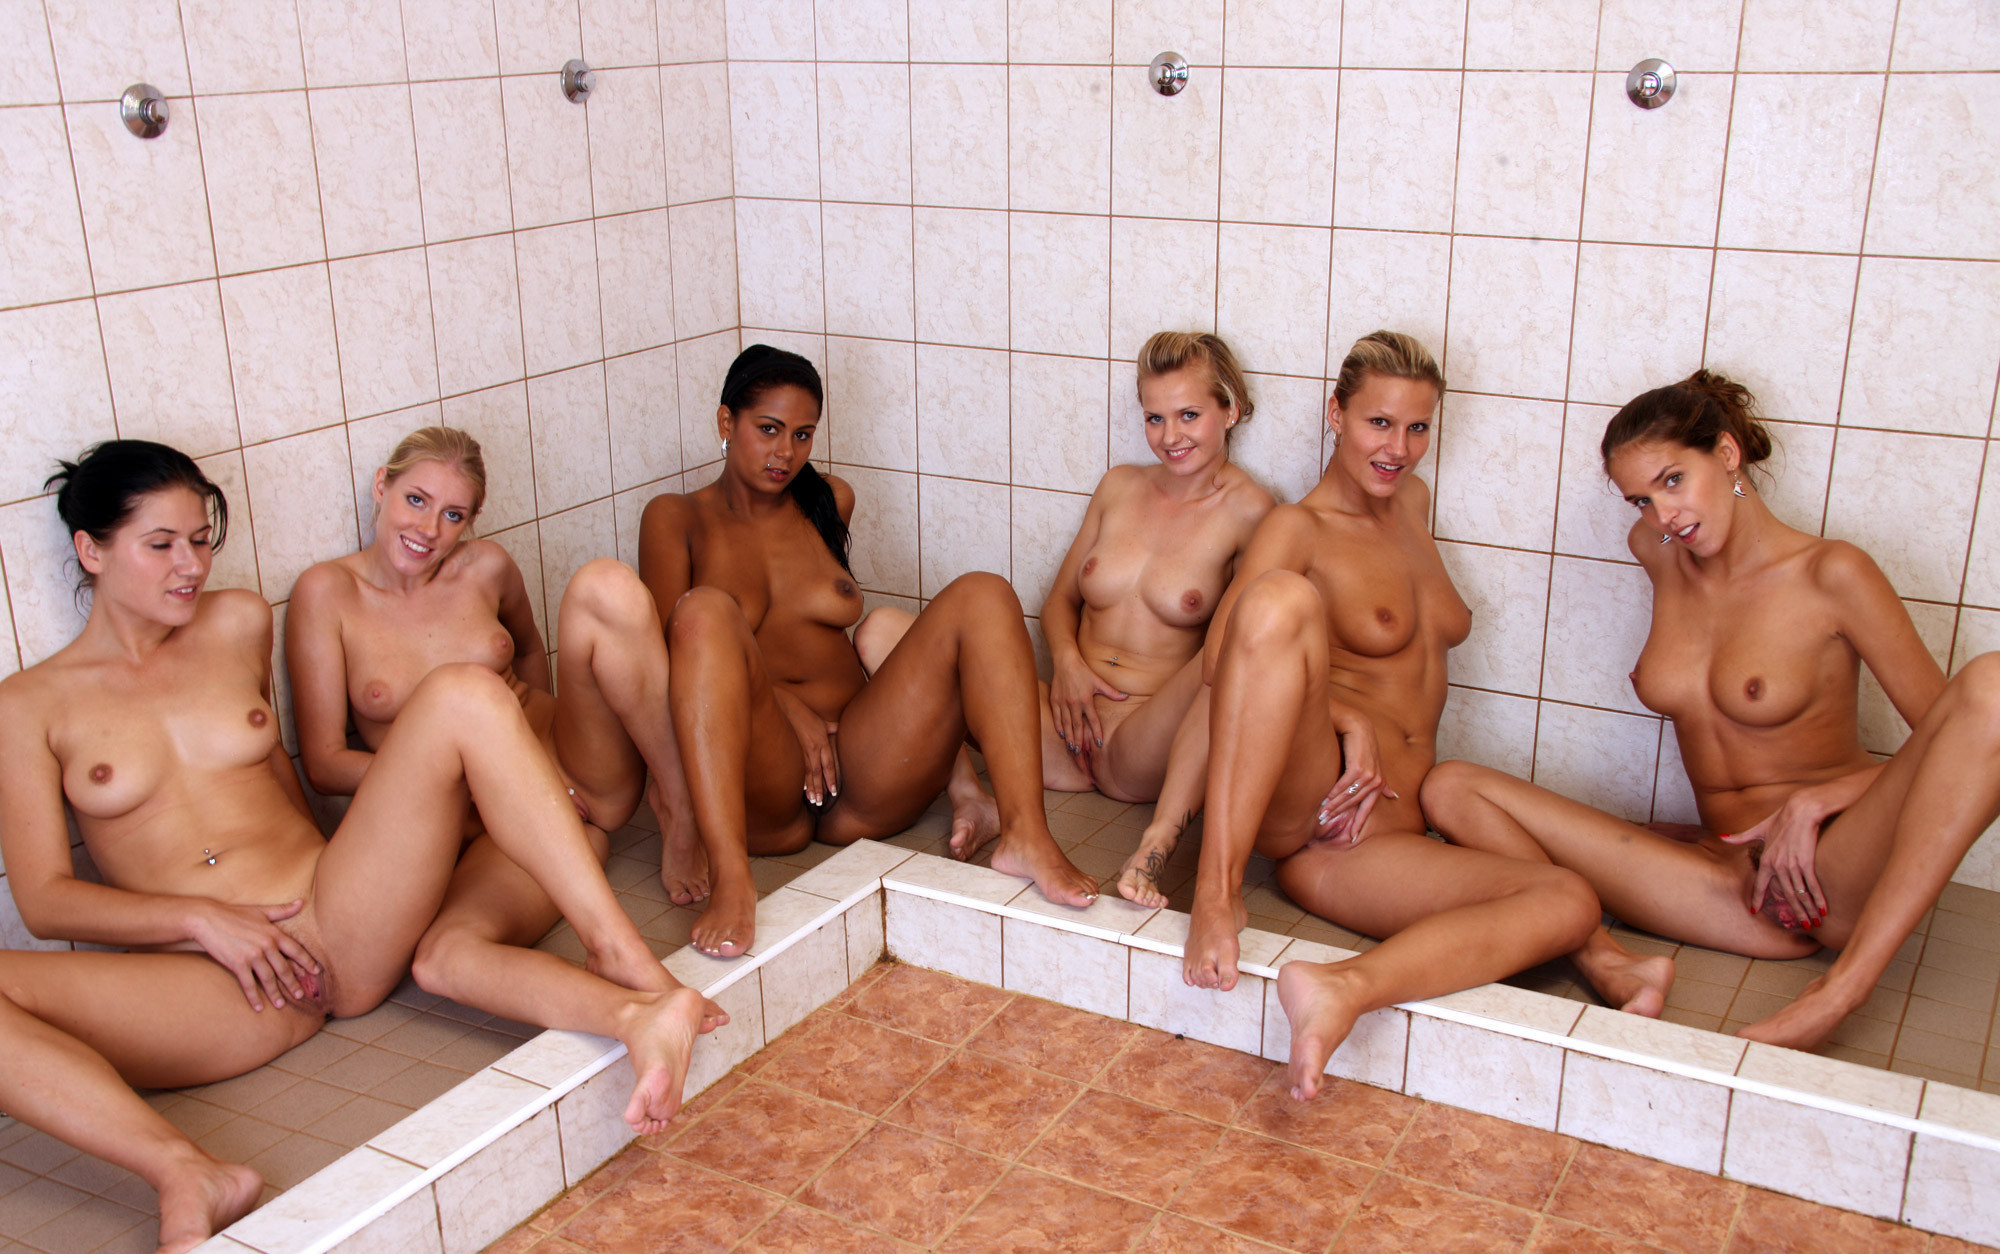 pussy-shower-room-nude-pics-cars-naked